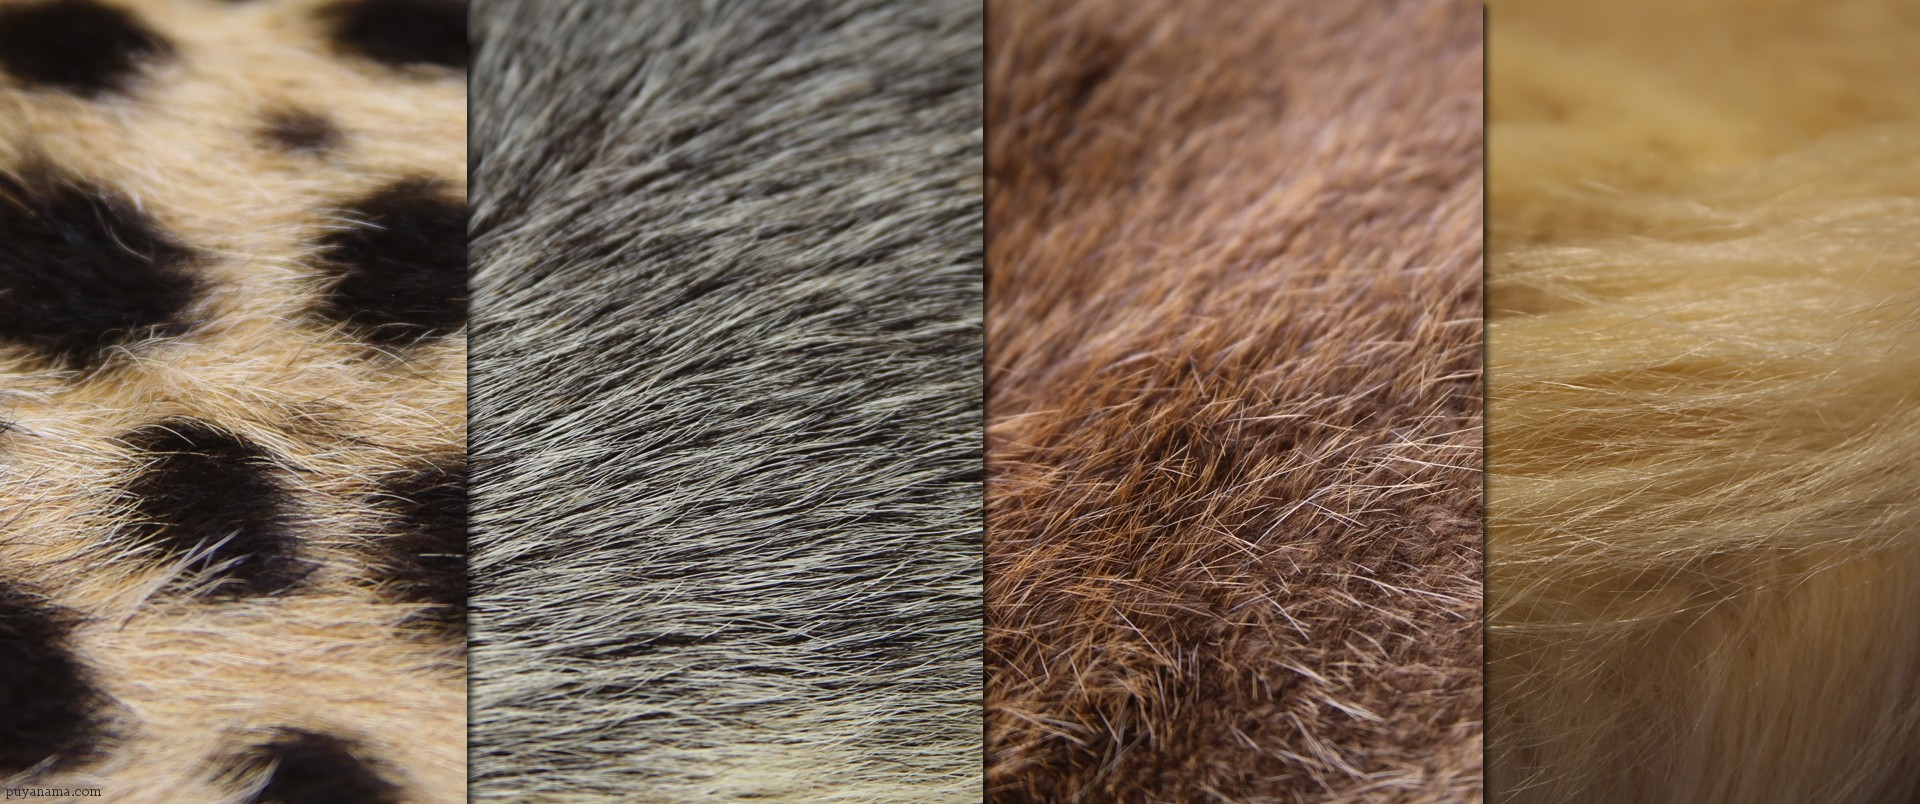 fur-reference